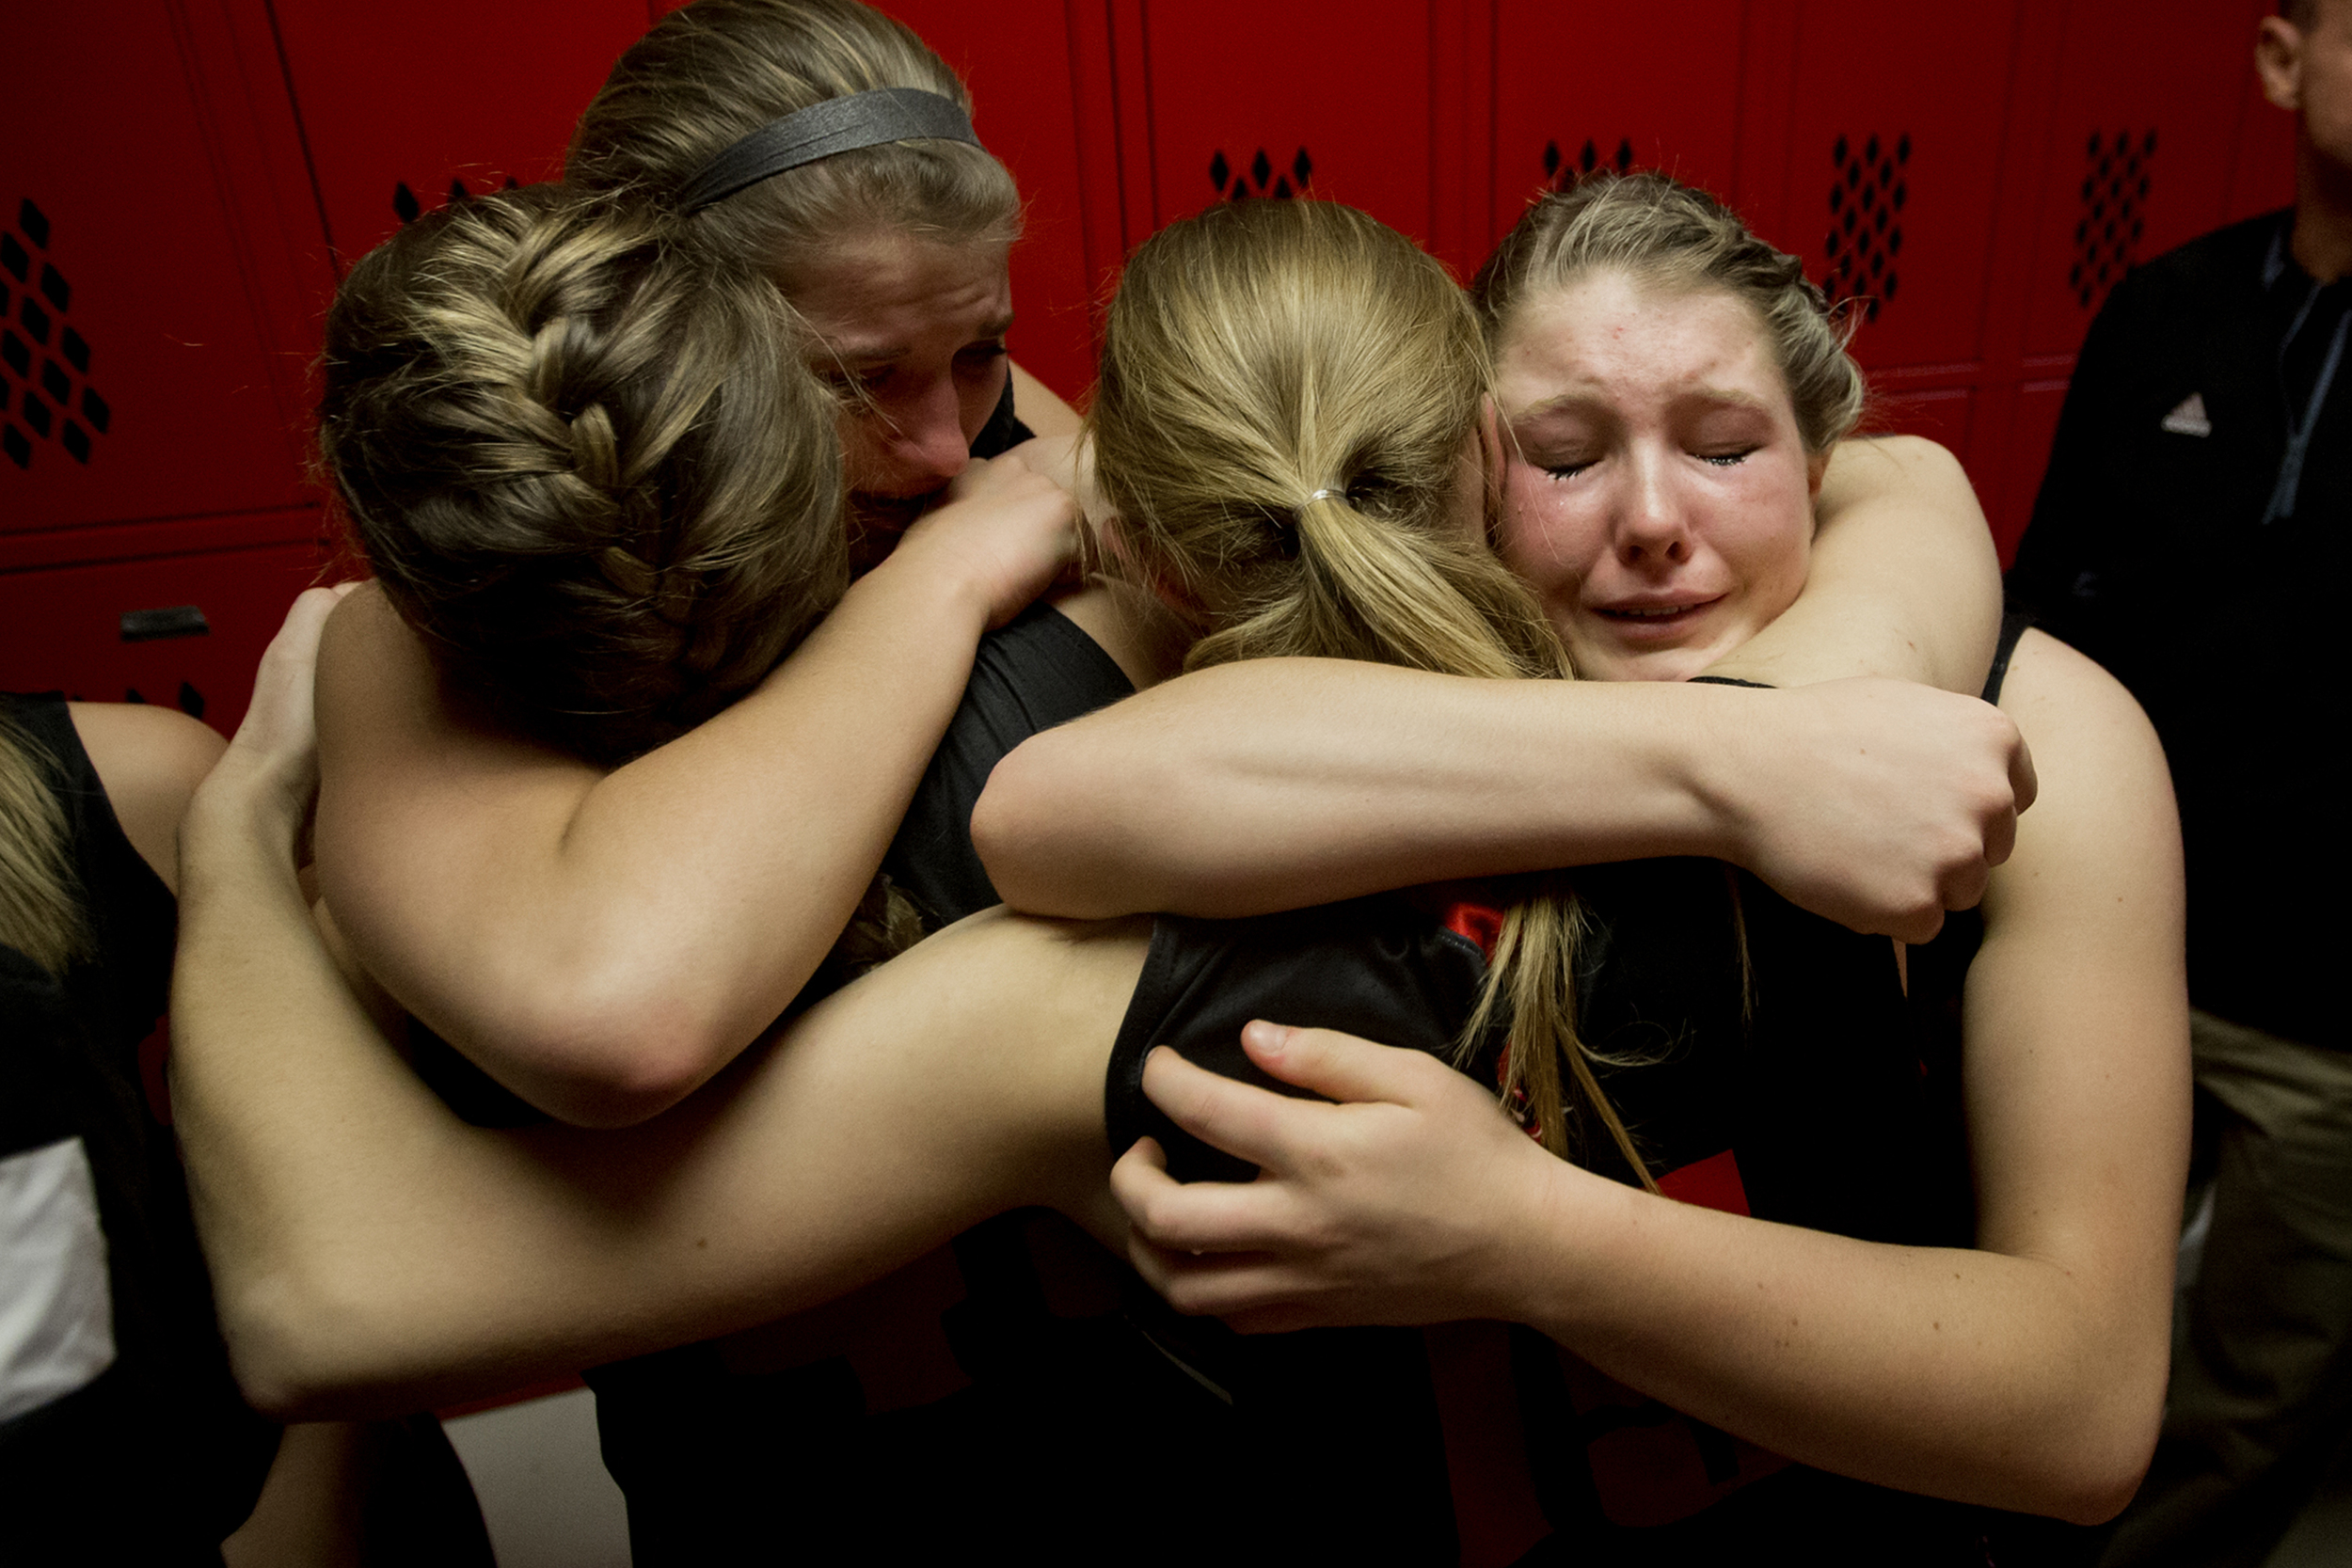 Southridge's Tori Tretter, right, Kadie Dearing, Taylor Neukam and Kendyl McKeough comfort each other after losing to Vincennes Lincoln in the Class 3A girls basketball sectional championship in Princeton, Ind. on Feb. 6, 2016. The Raiders lost 48-39.